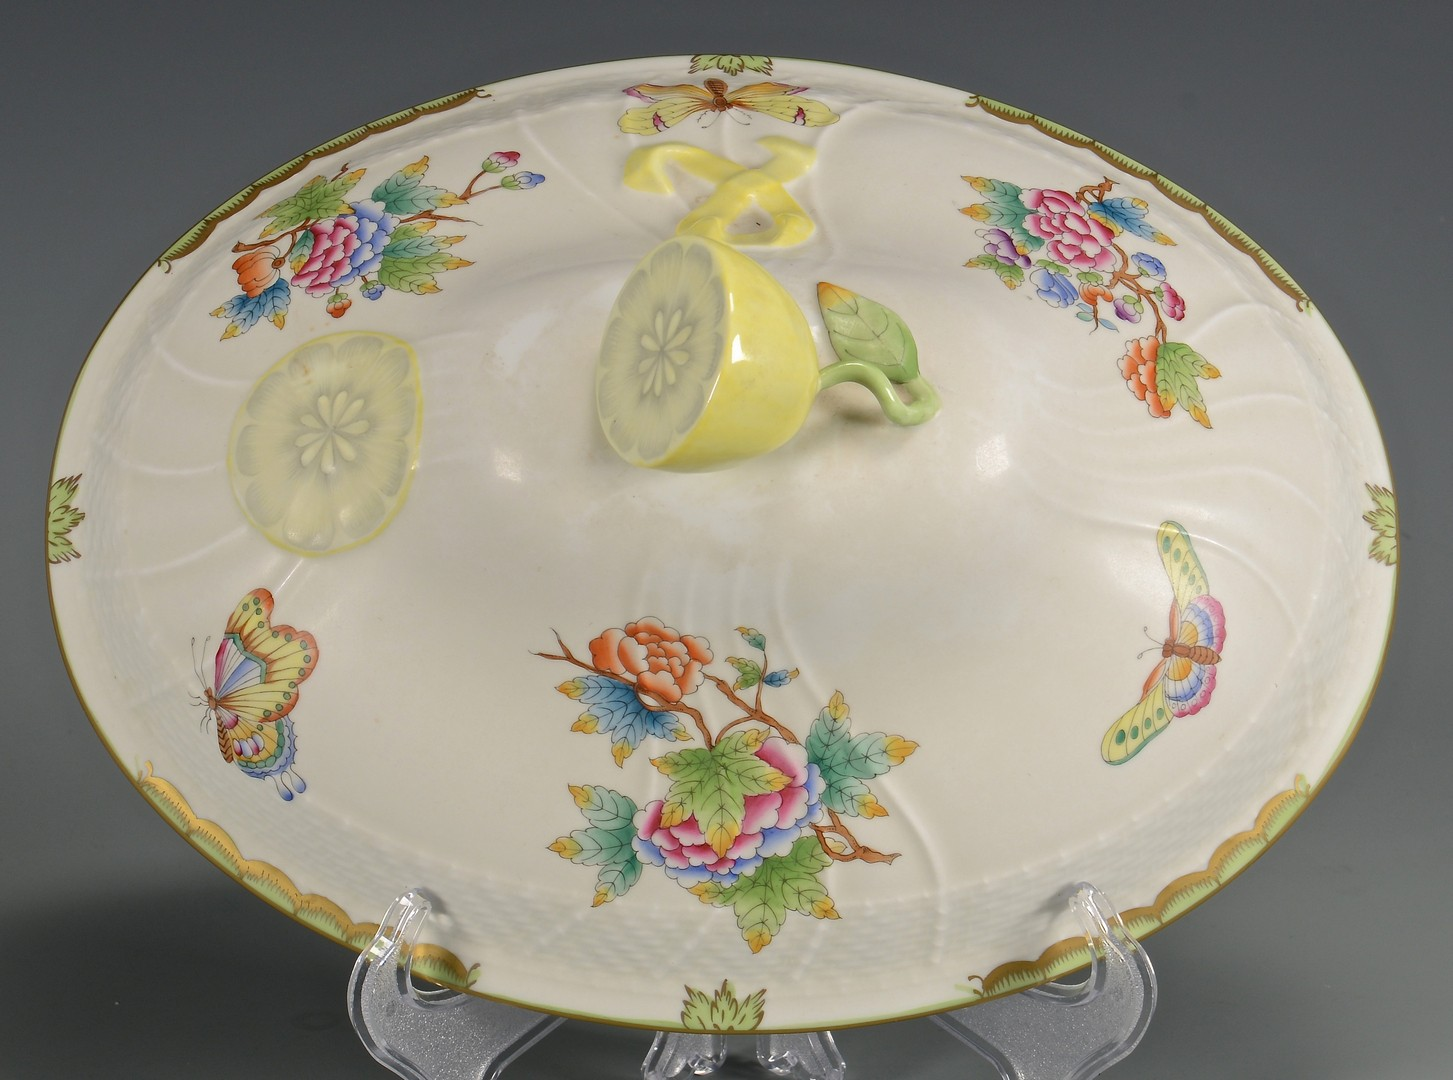 Lot 617: Herend Soup Tureen